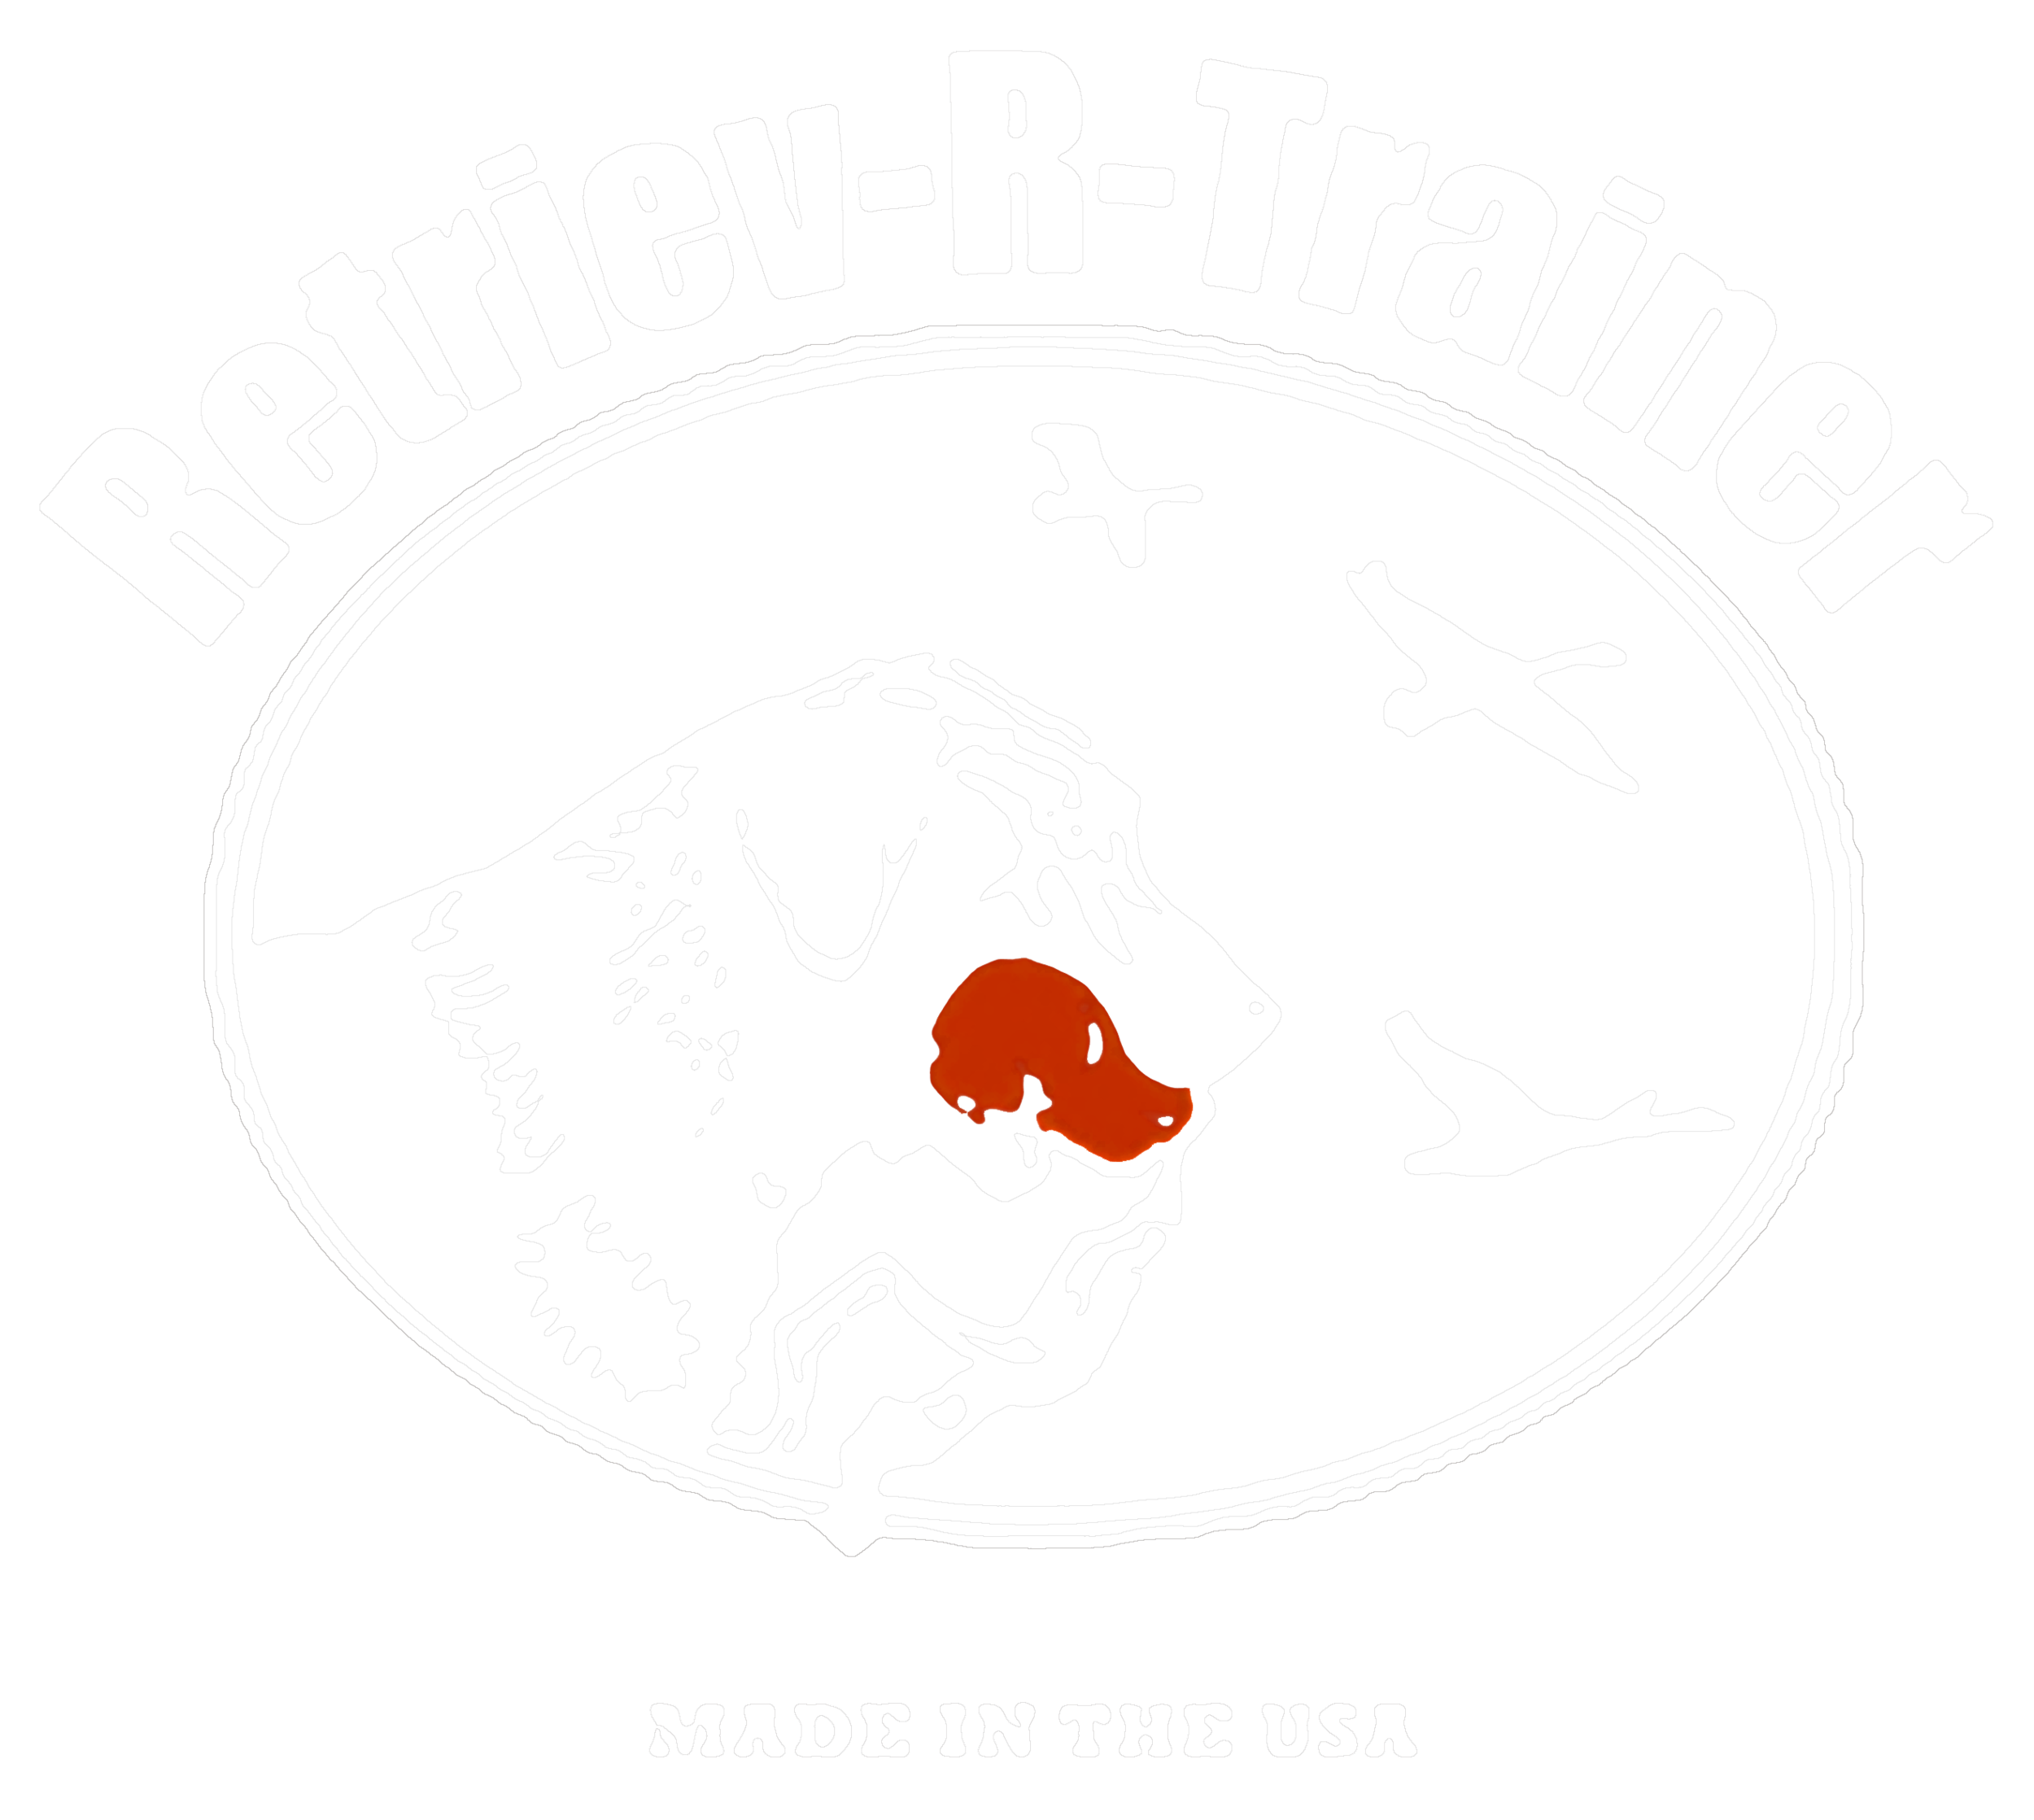 Retriev-R-Trainer